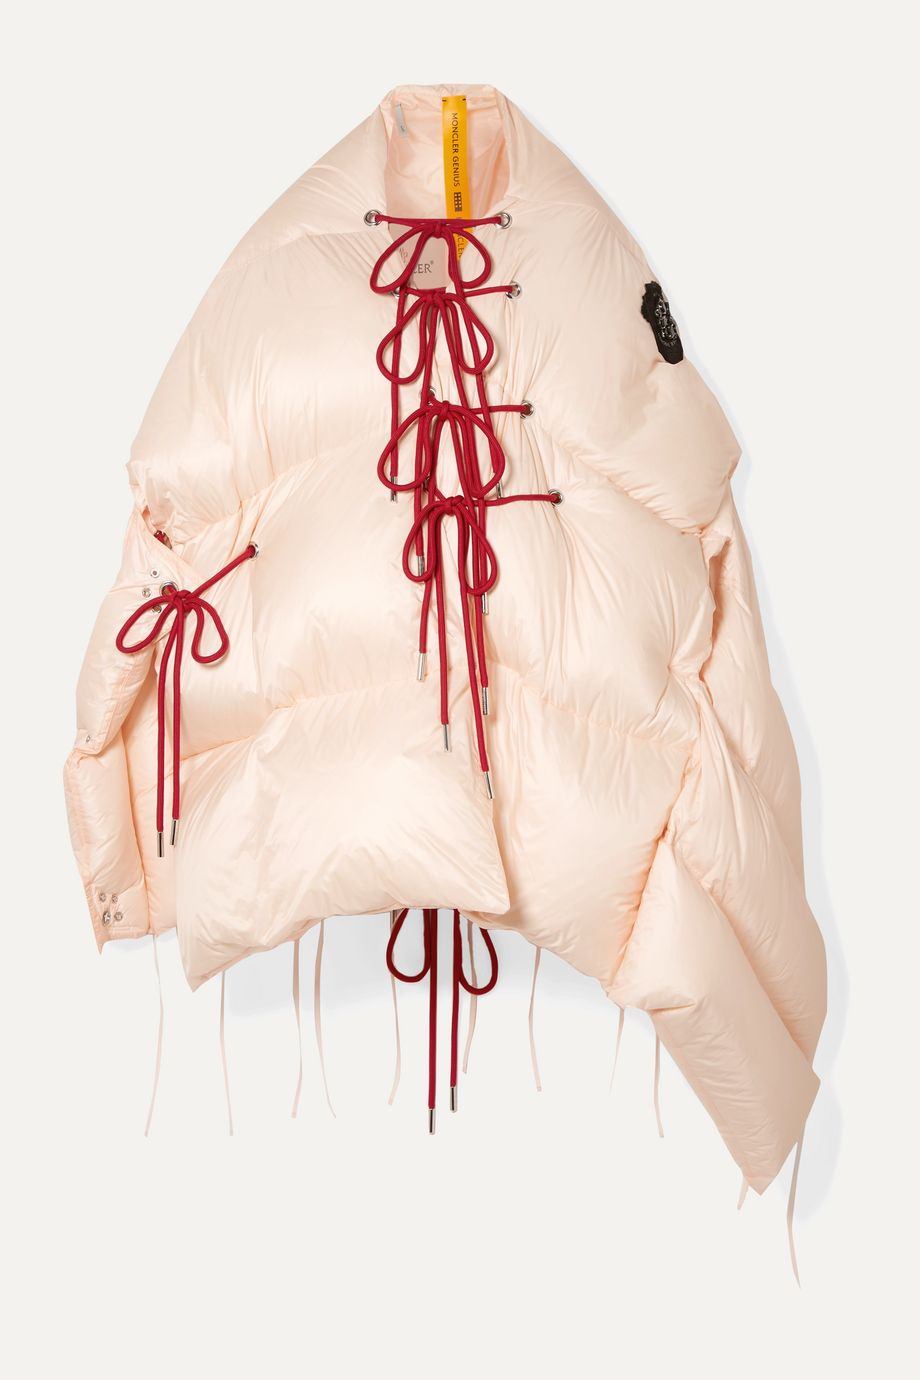 Moncler Genius + 4 Simone Rocha Shari lace-up quilted shell jacket